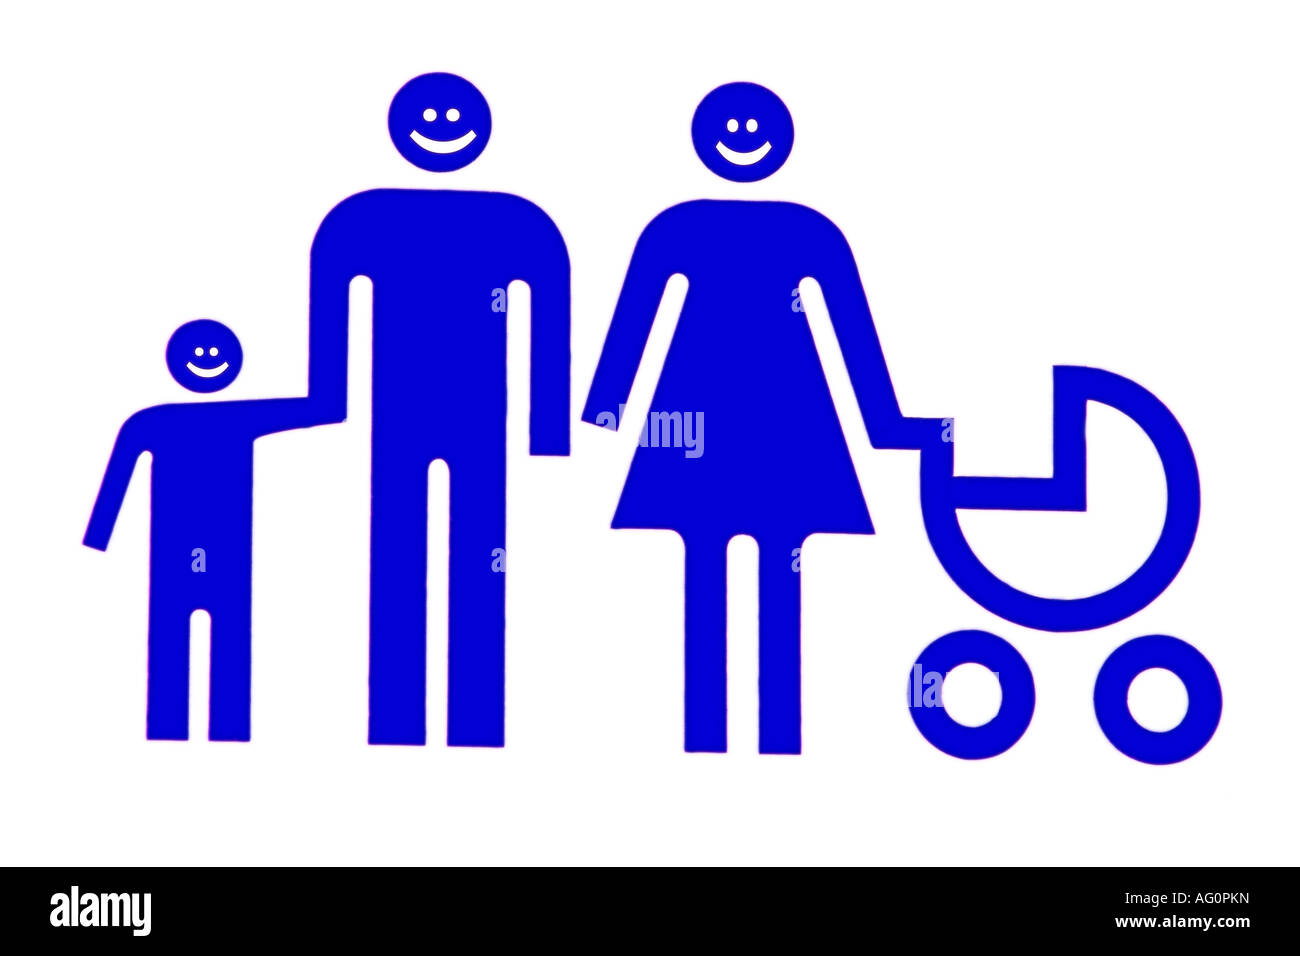 Nuclear family unit illustration - Stock Image